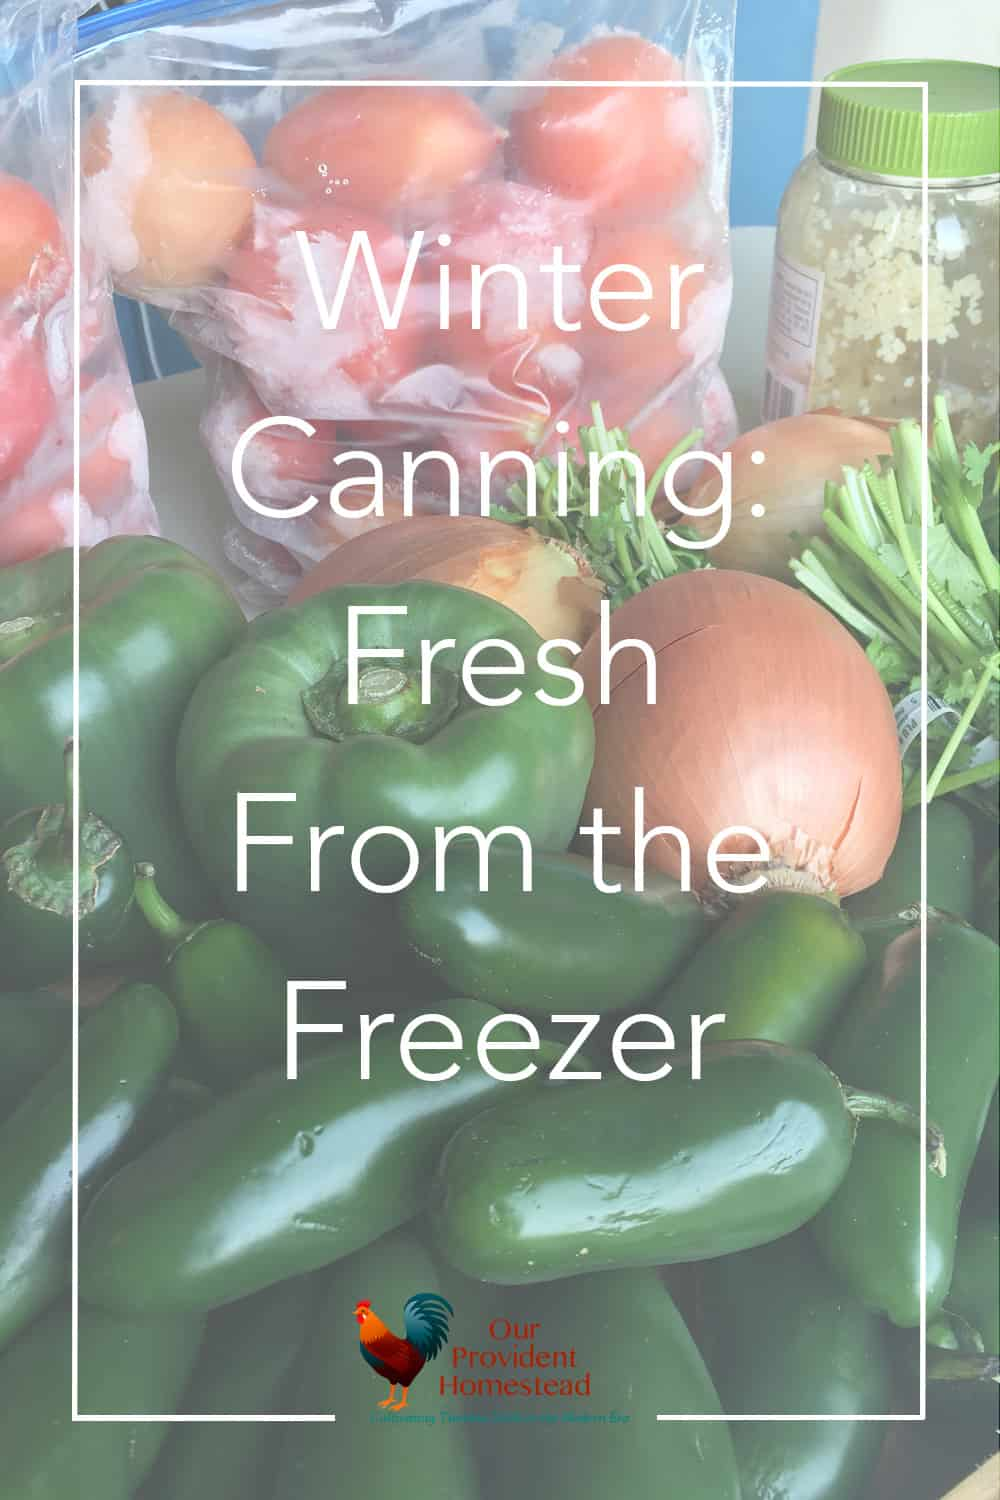 Do you have a freezer full of last year's harvest? We have two recipes that might help you do some winter canning to empty your freezer for spring. Winter Canning | Freezing the Harvest